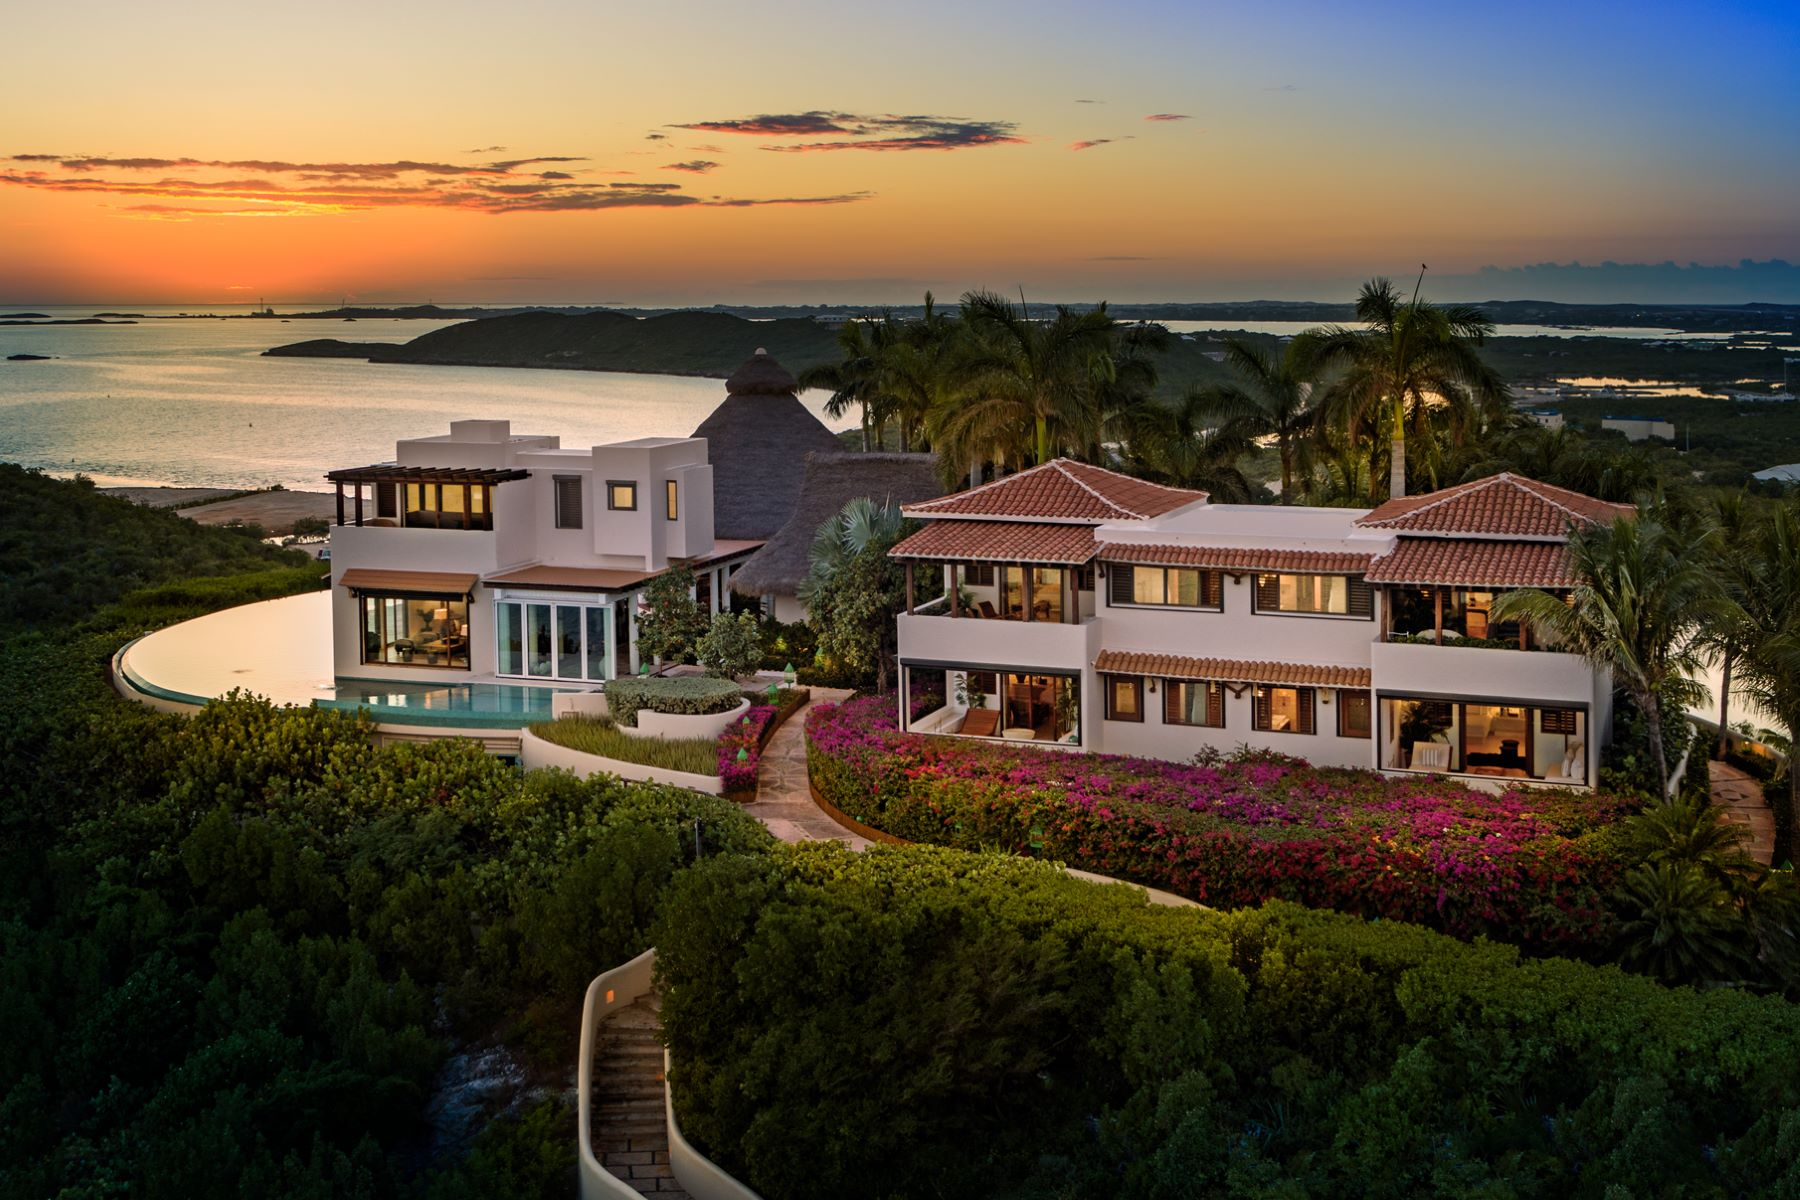 Single Family Homes for Sale at Turtle Tail Waterfront Bajacu Turtle Tail, Providenciales TKCA 1ZZ Turks And Caicos Islands